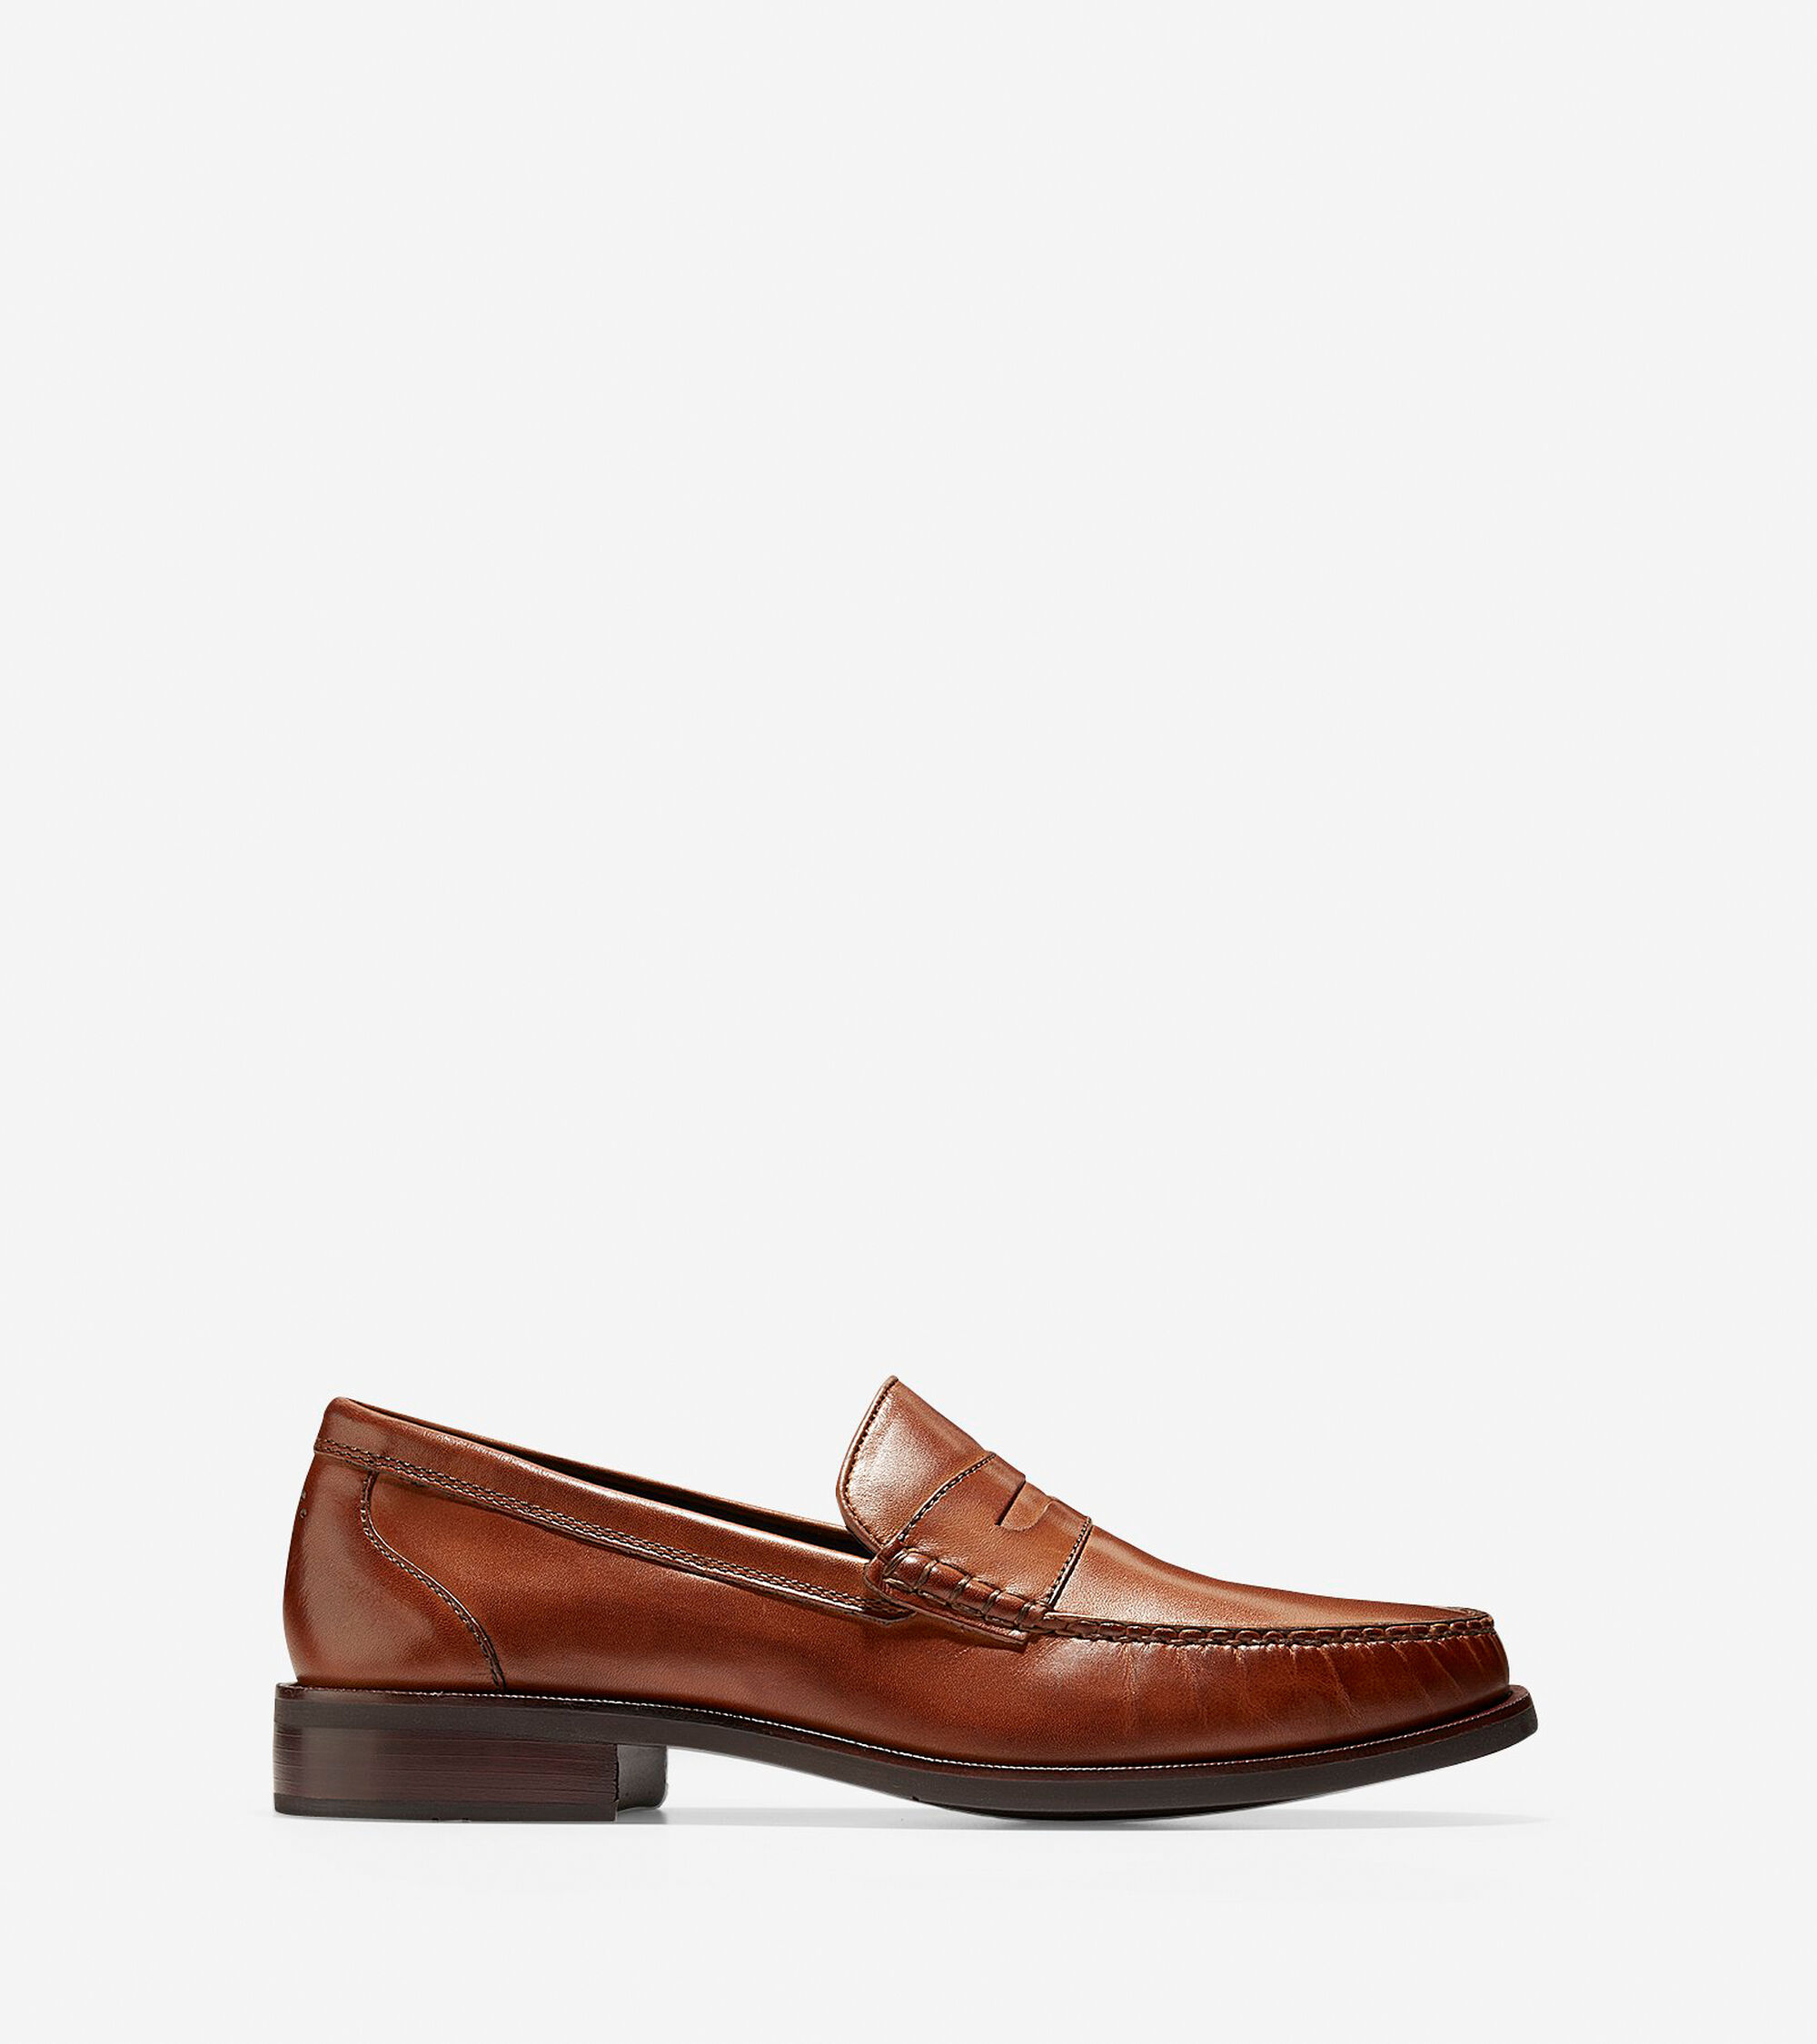 04454a555bd Men s Pinch Sanford Penny Loafers in British Tan